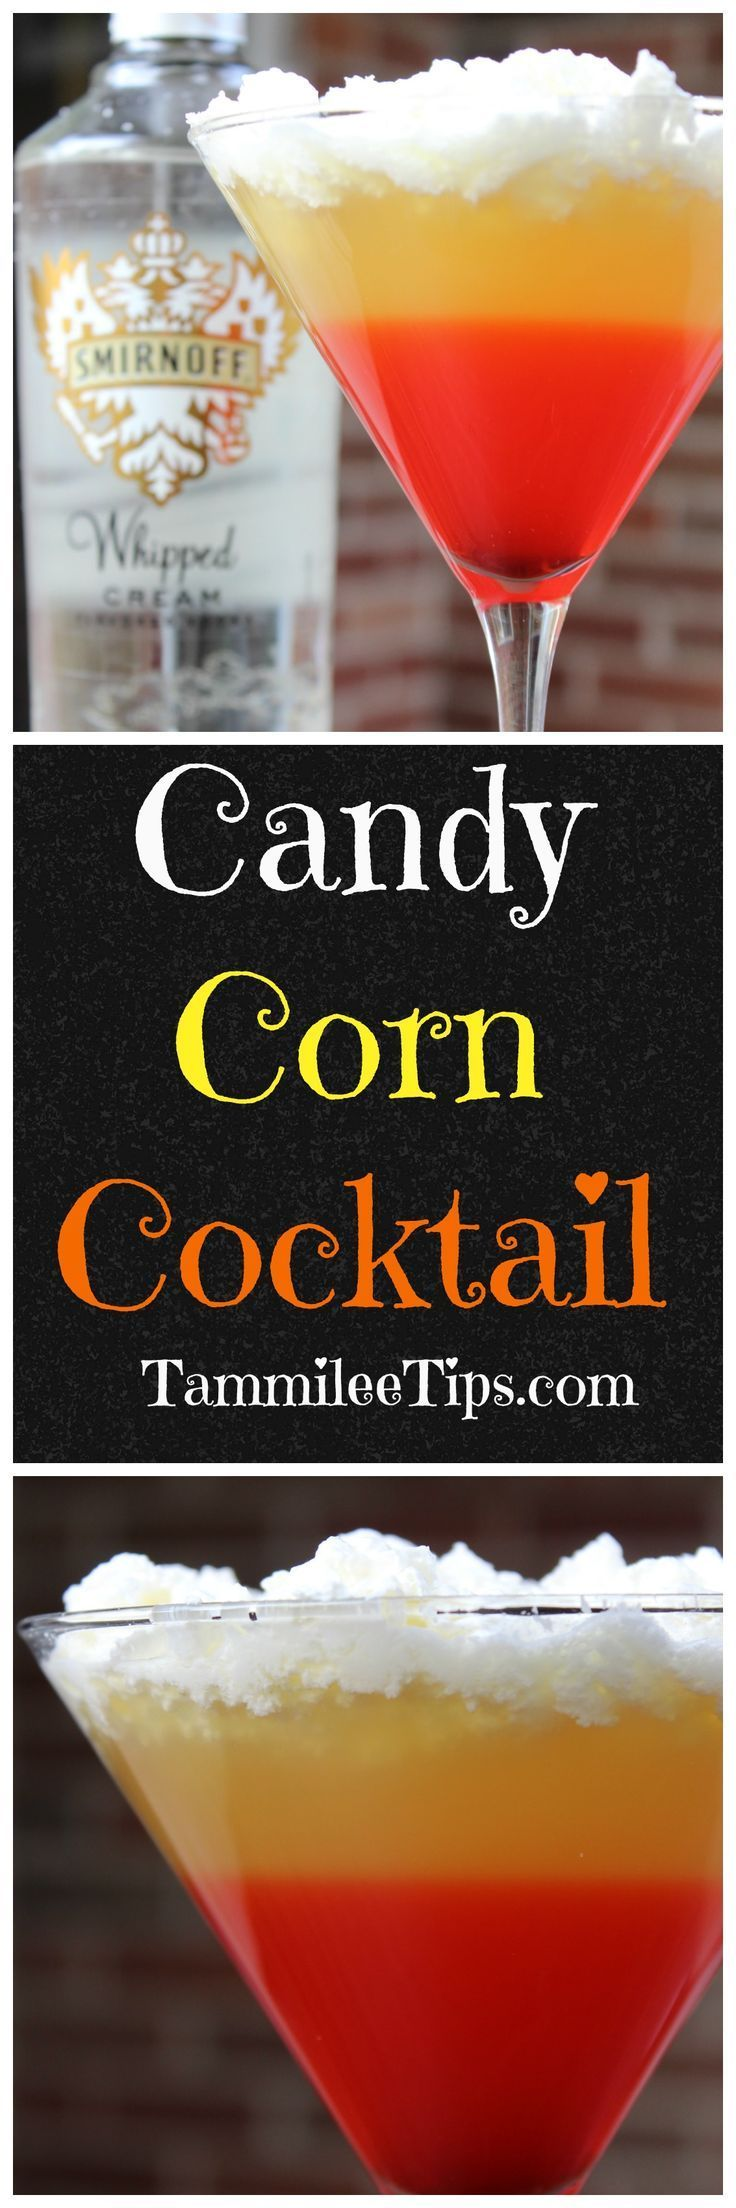 Candy Corn Cocktail Recipe perfect for Halloween parties! This easy cocktail recipe is sure to be an adult crowd favorite!